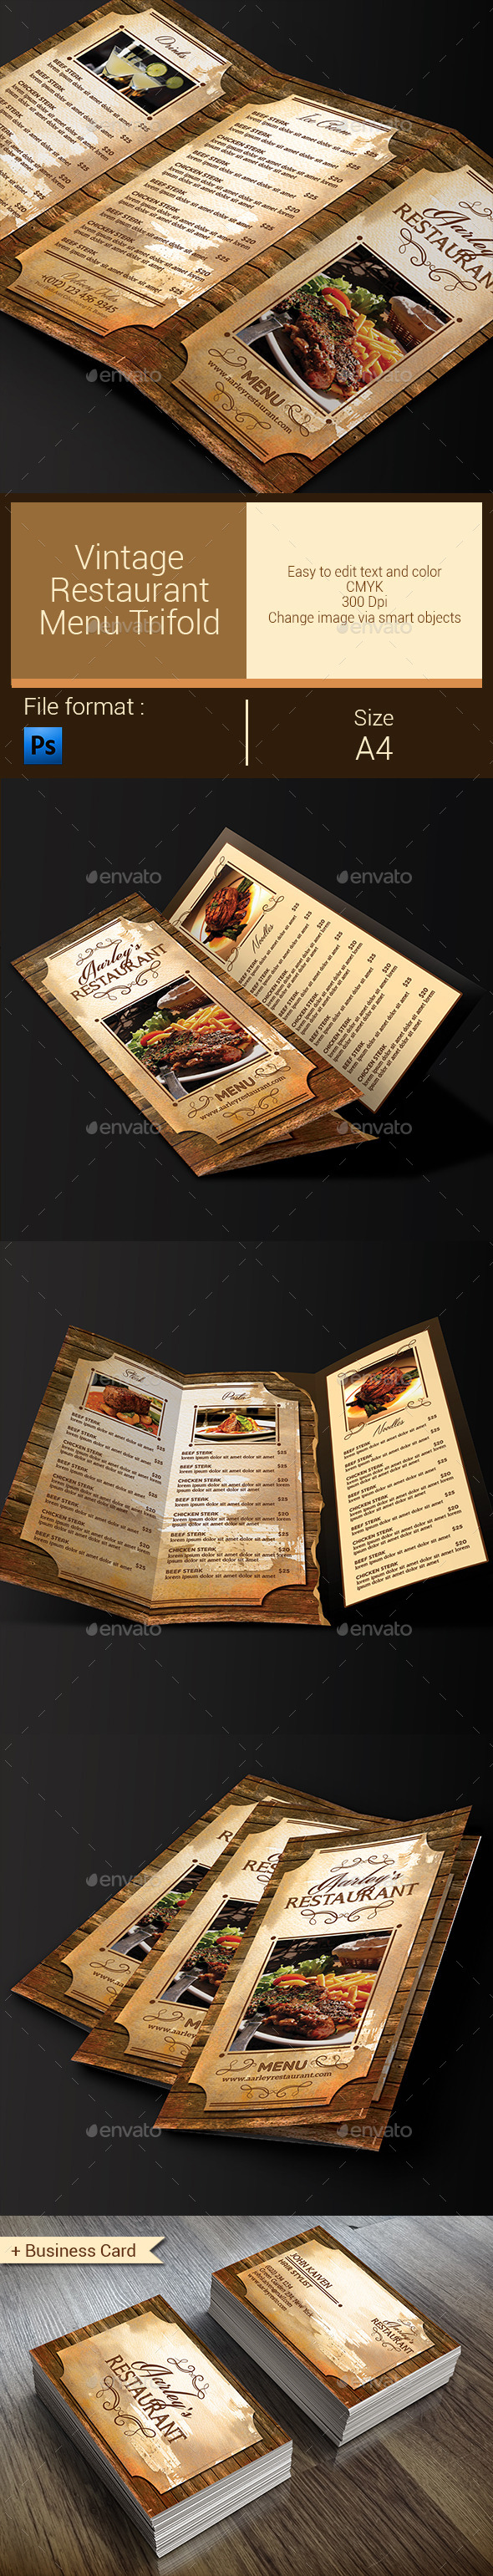 GraphicRiver Vintage Restaurant Menu Trifold & Business Card 10297436